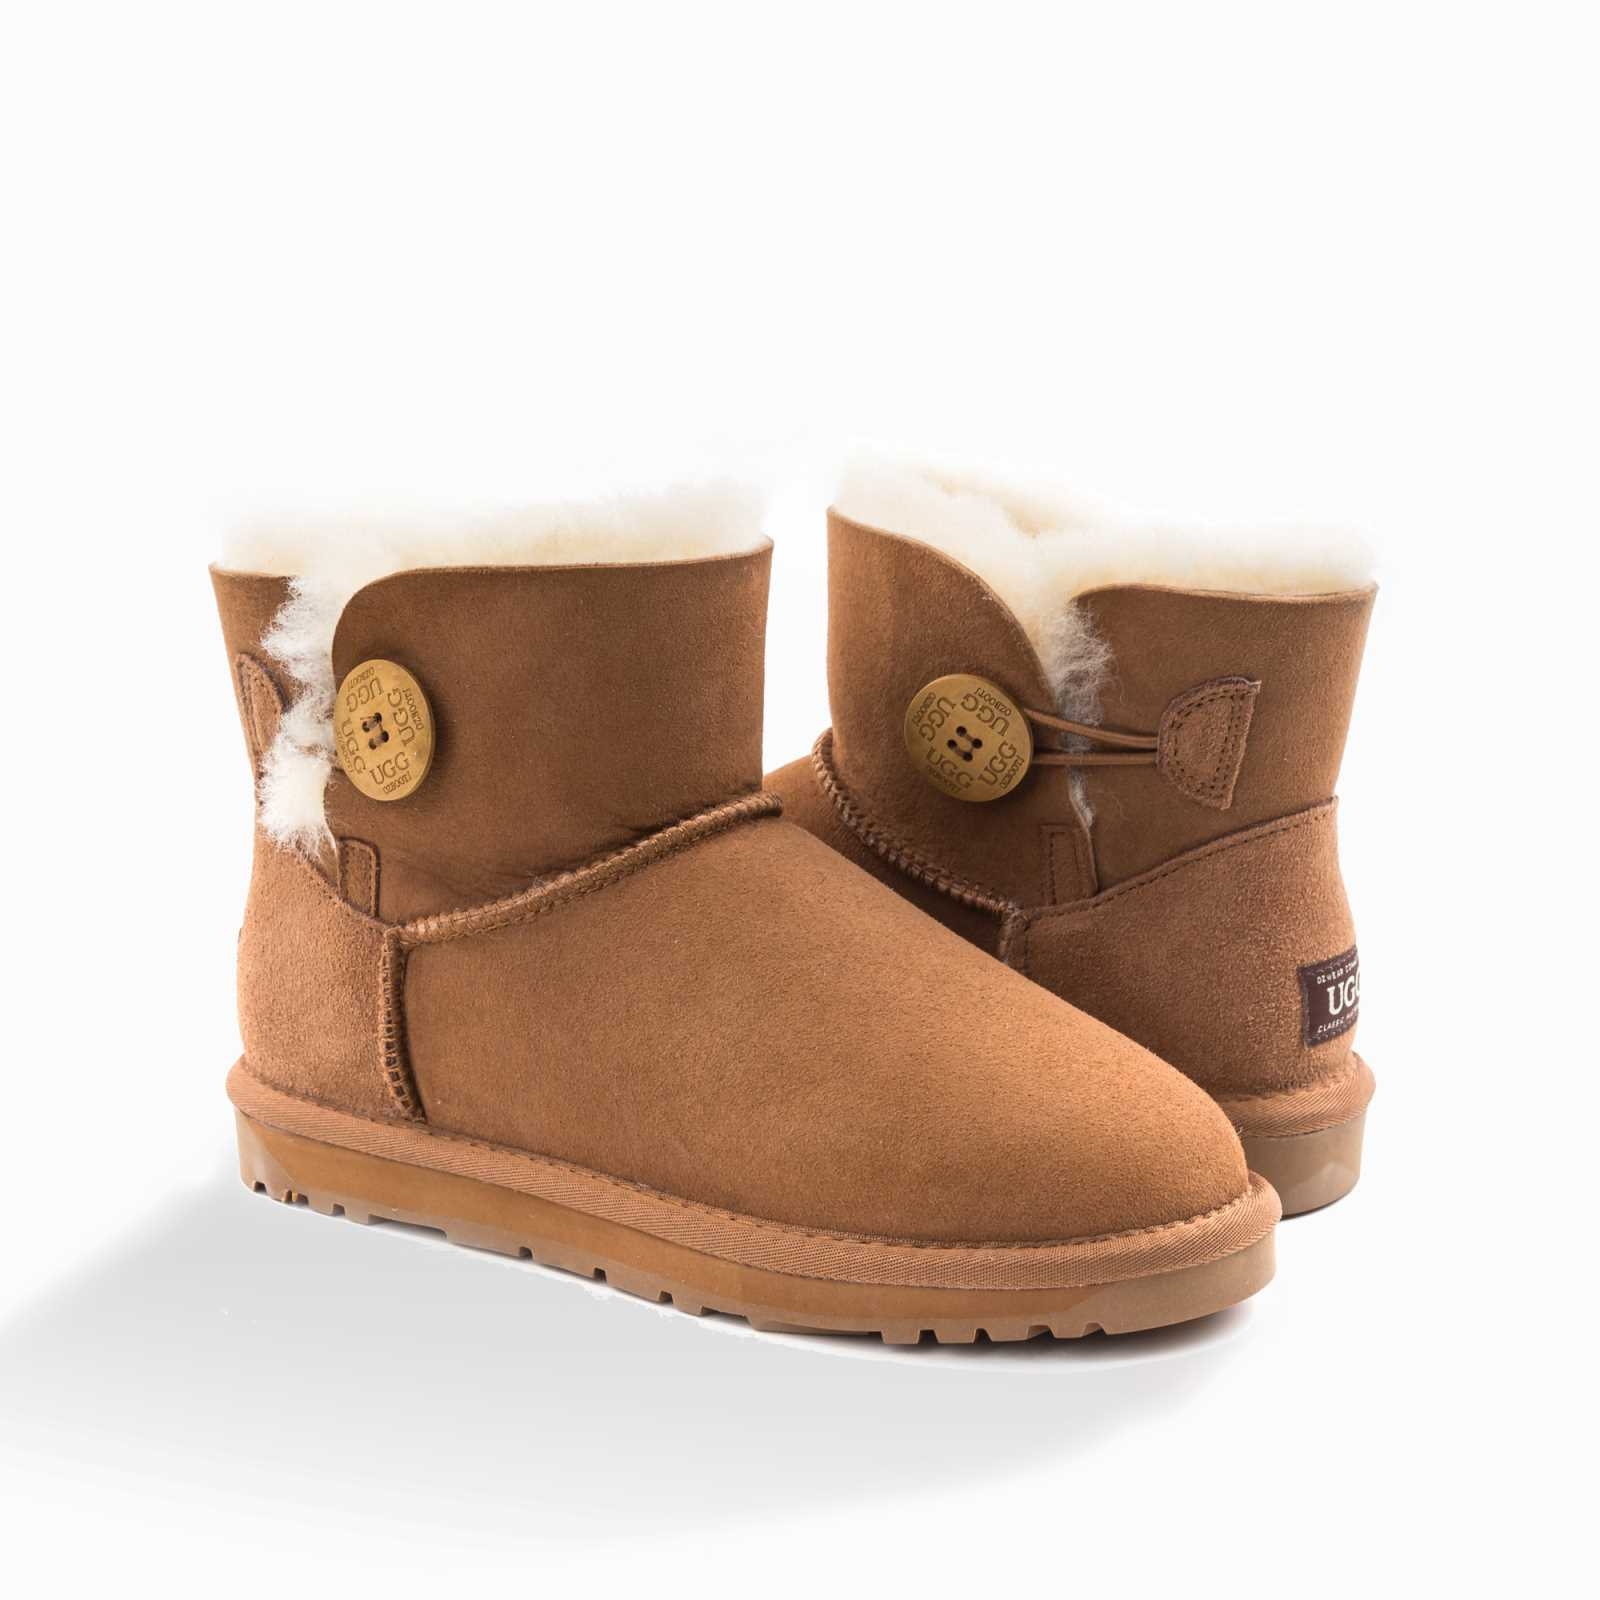 6859c74431d Details about UGG OZWEAR 3rd Gen Ladies Classic Mini Button Boots Sheepskin  Water Resist OB362